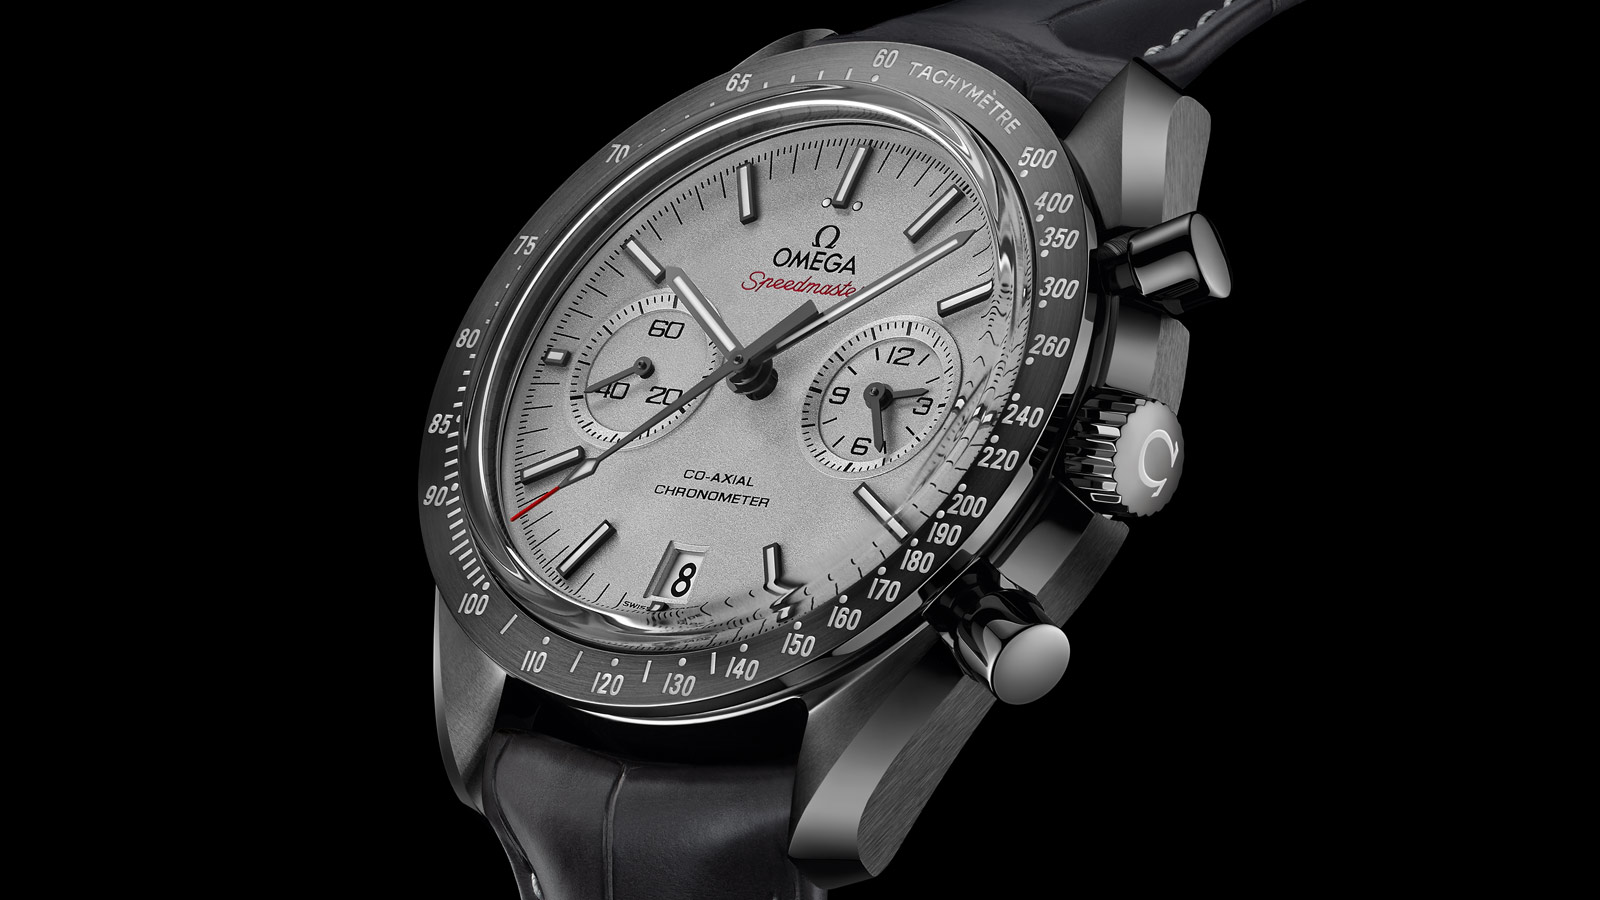 Speedmaster ムーンウォッチ Moonwatch Omega Co‑Axial Chronograph 44.25 mm - 311.93.44.51.99.001 - ビュー 3